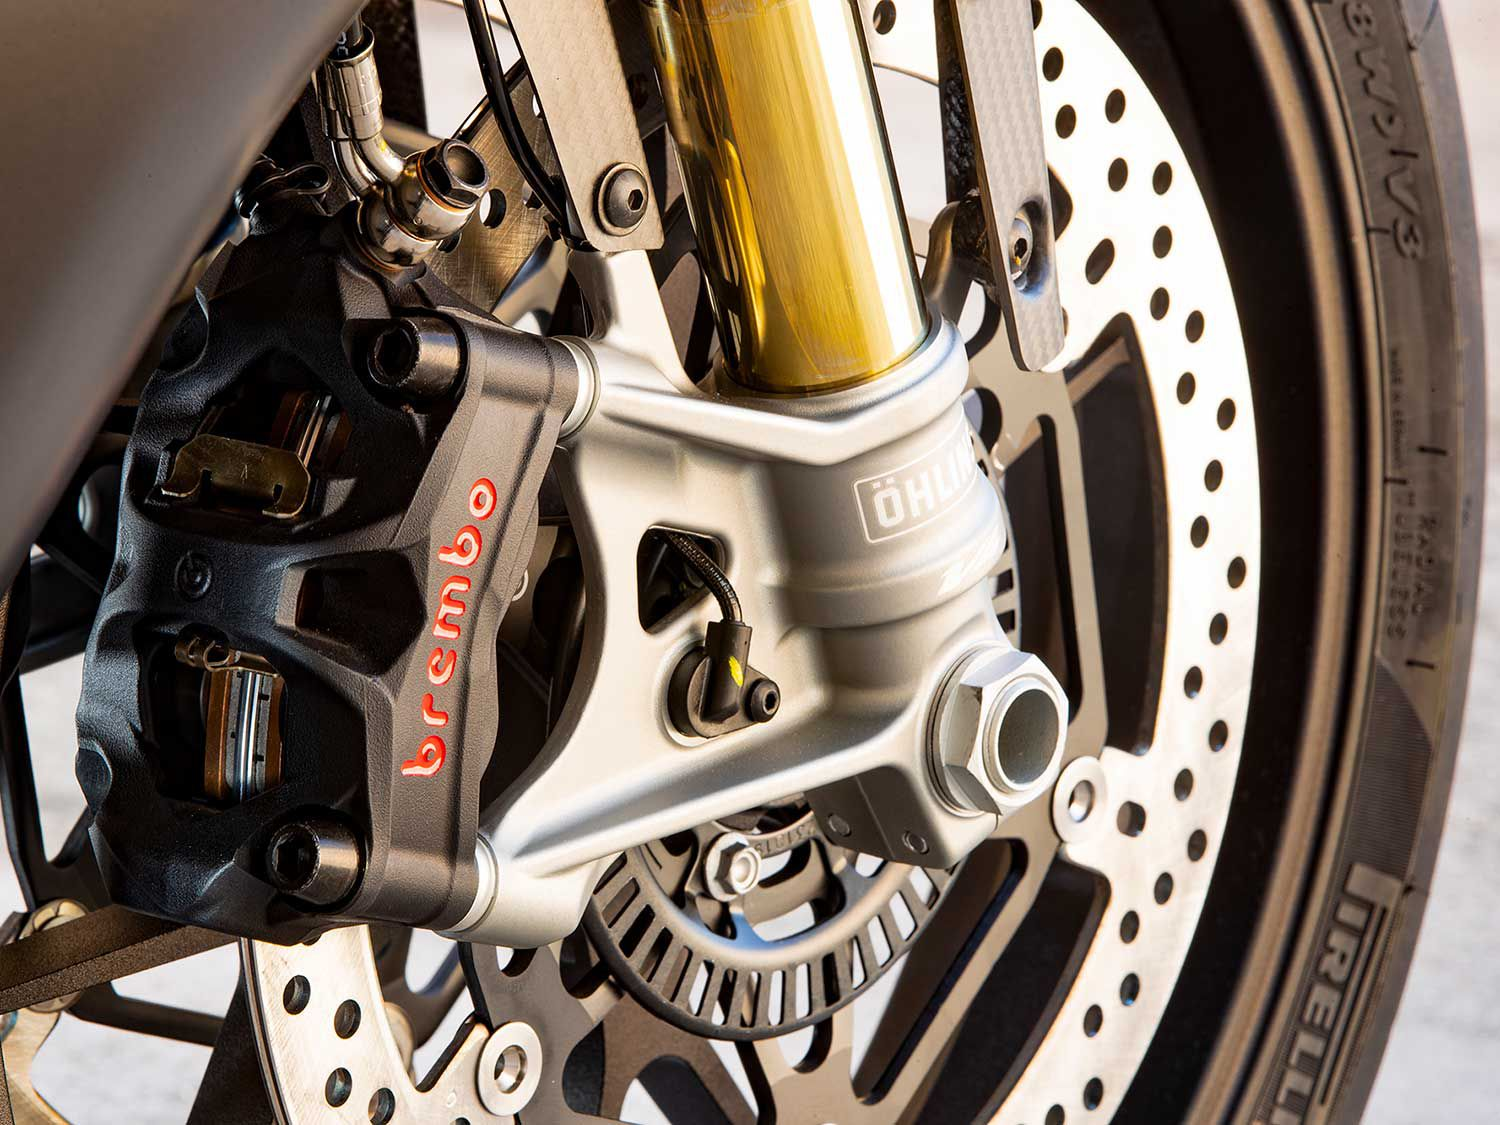 A pair of top-shelf Brembo Stylema calipers clamping to 330mm discs quickly bring this Aprilia to a halt, with great feel at the brake lever.